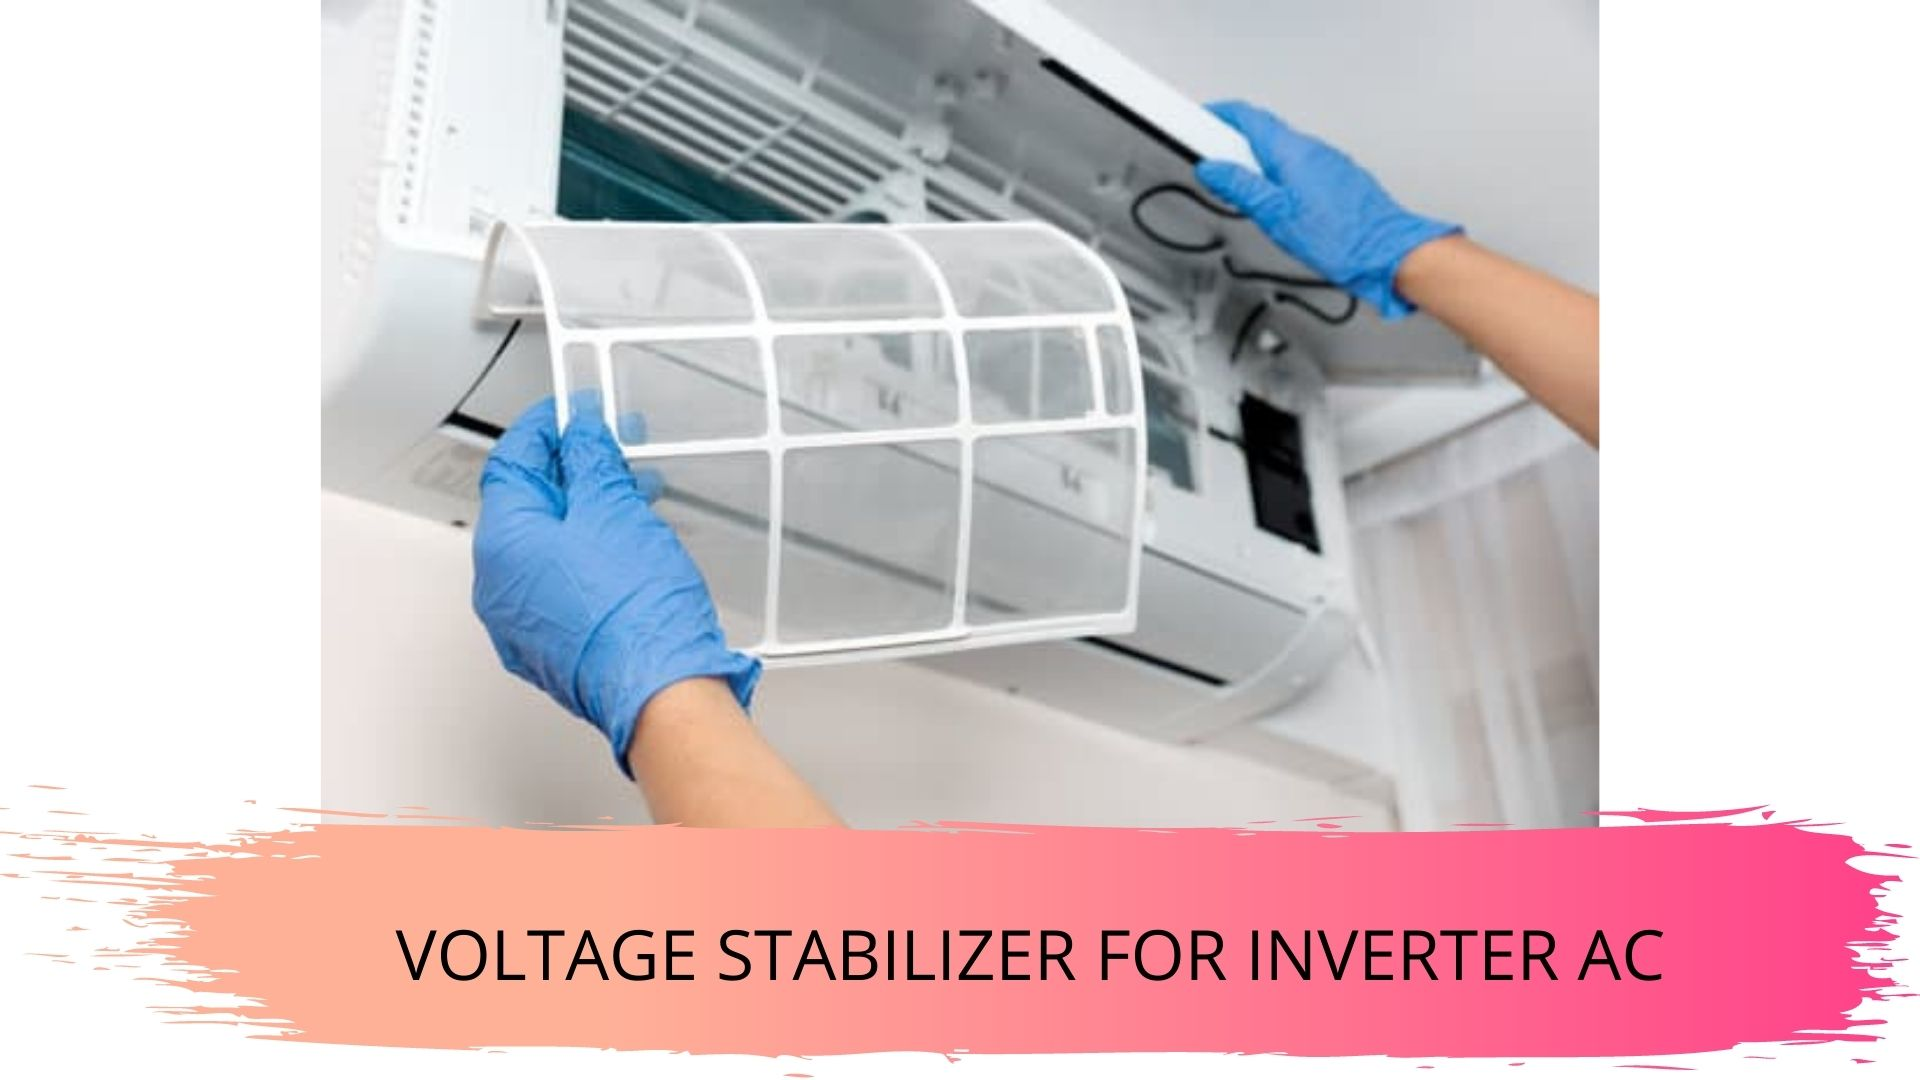 is voltage stabilizer required for inverter ac